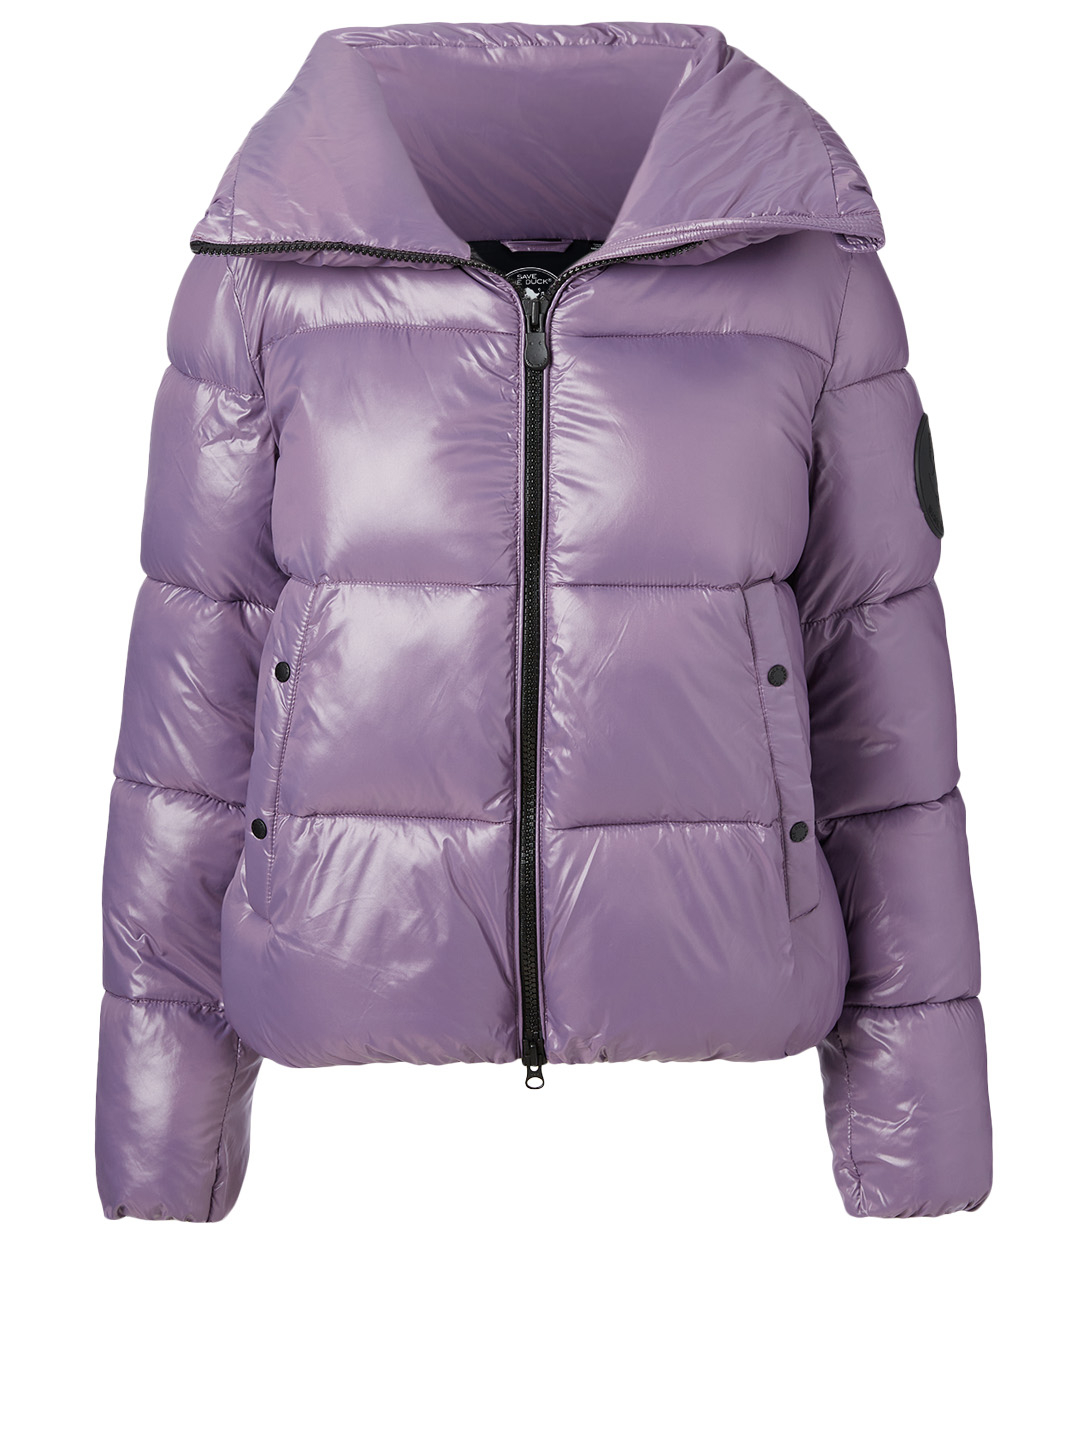 SAVE THE DUCK Luck Oversized Puffer Jacket With Stand Collar Women's Purple